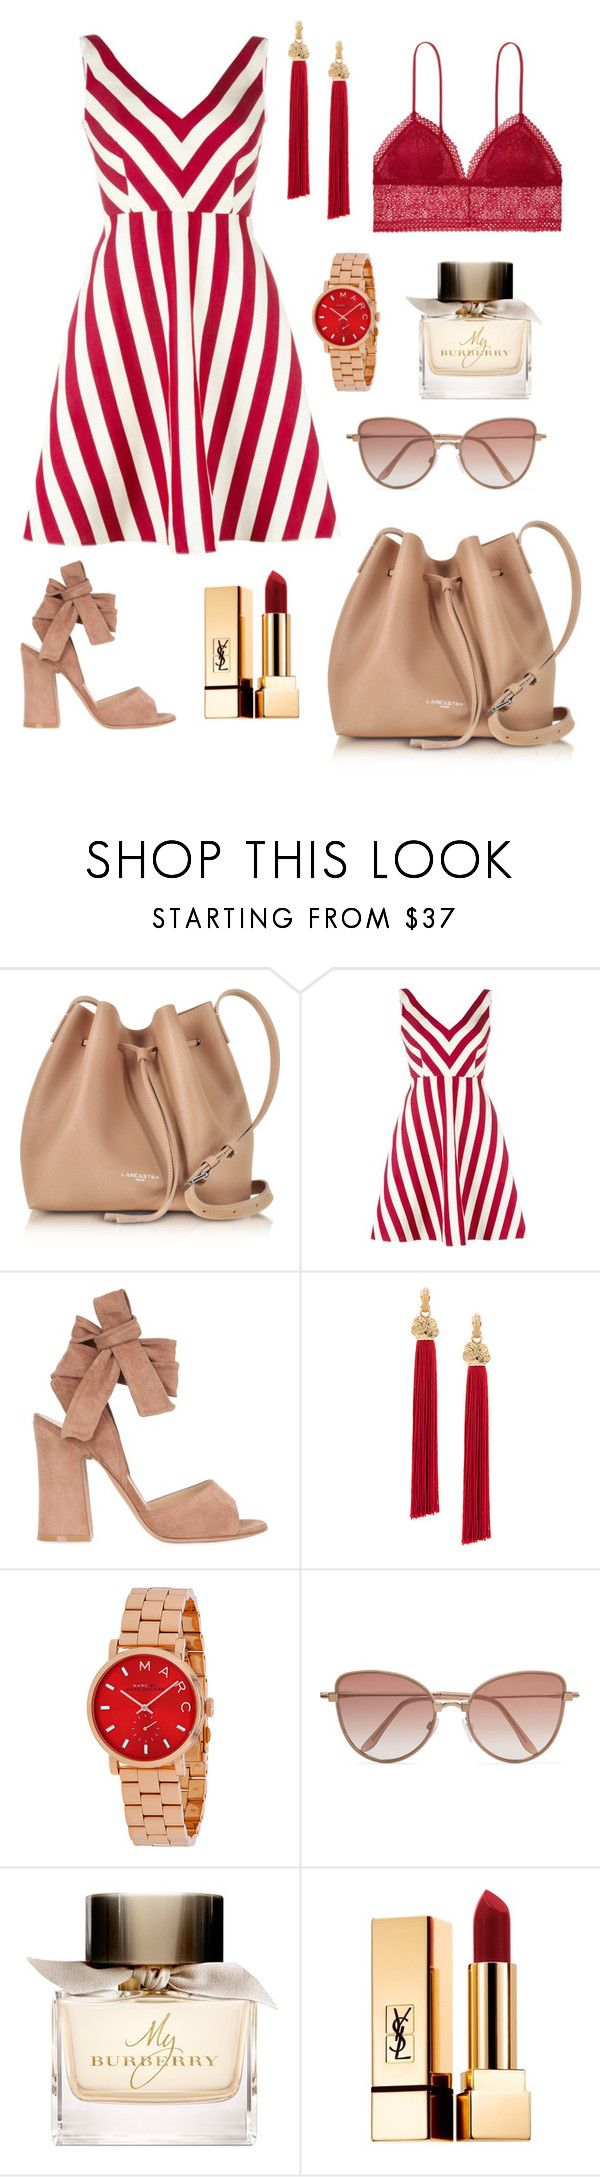 Bold stripes by brunaf19 on Polyvore featuring moda, RED Valentino, Gianvito Rossi, Lancaster, Yves Saint Laurent, Cutler and Gross, Burberry and Victoria's Secret